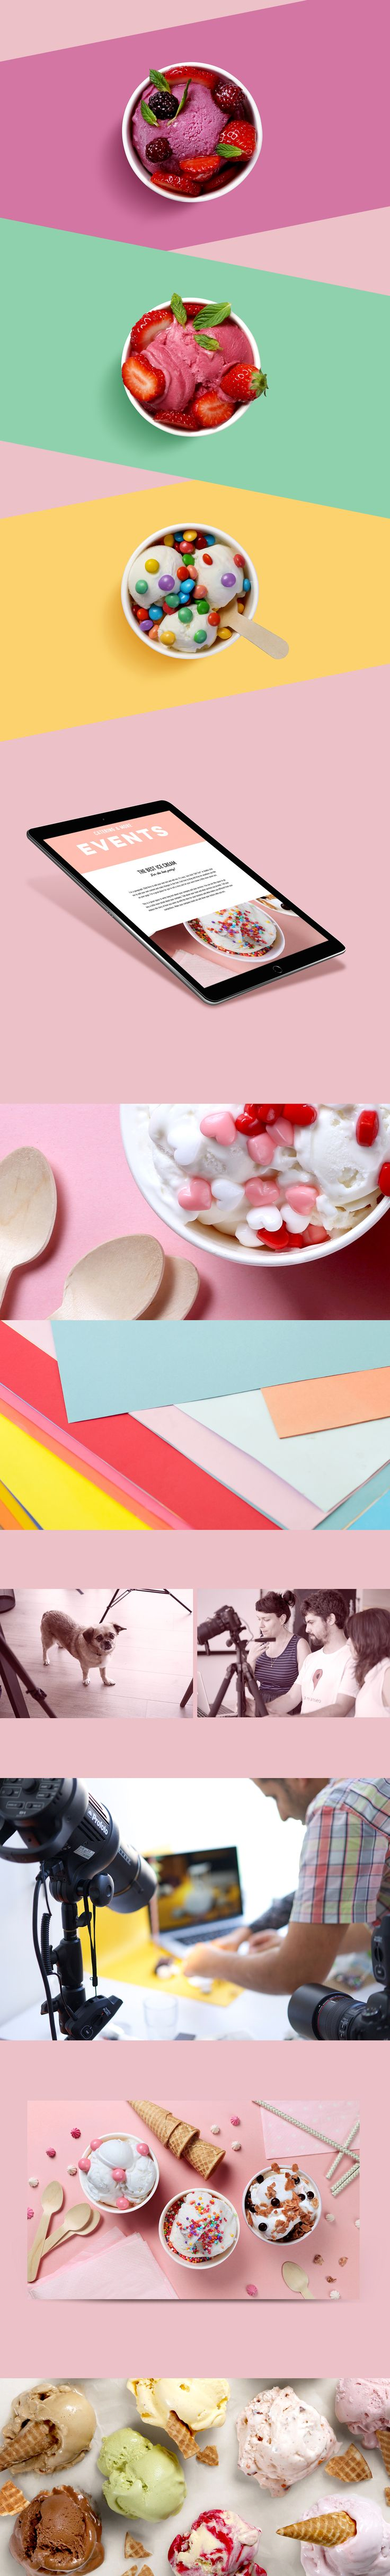 We strive to create original high quality content for our users. That means that we create a lot of photoshoots for our templates. This photoshoot was created for an ice cream shop template.